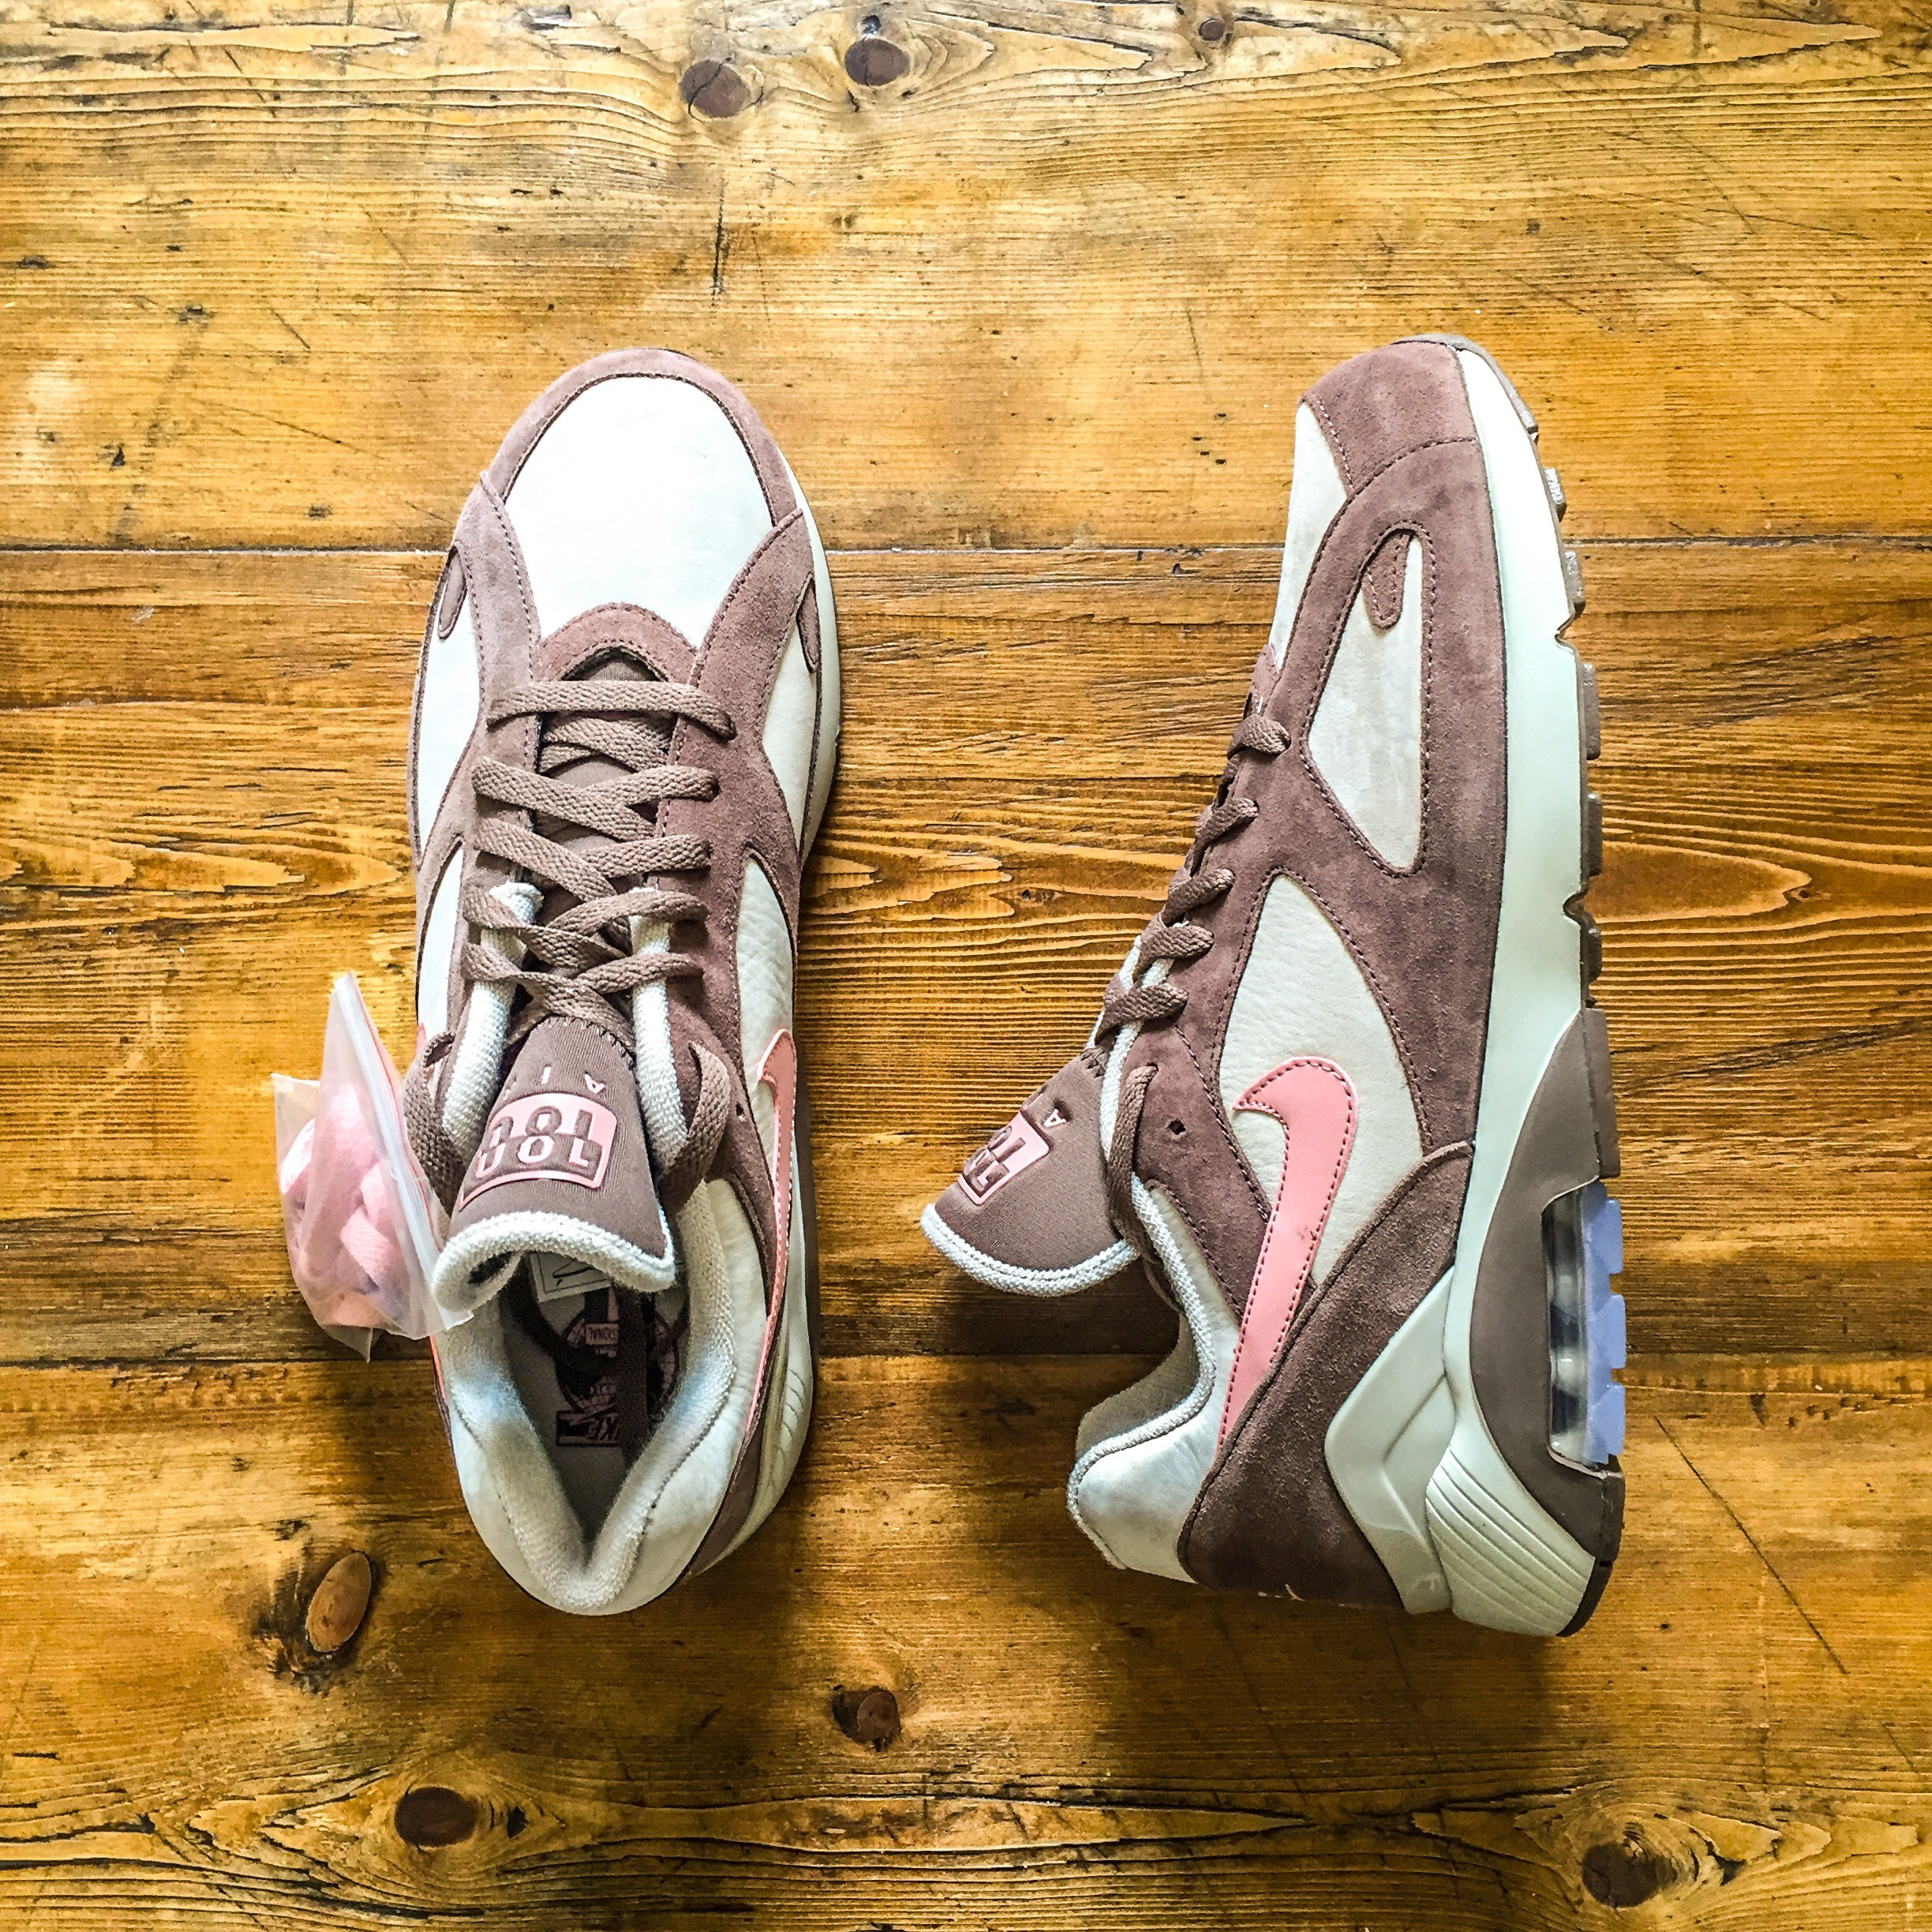 Nike Air Max 180 Bacon Released Date Depop